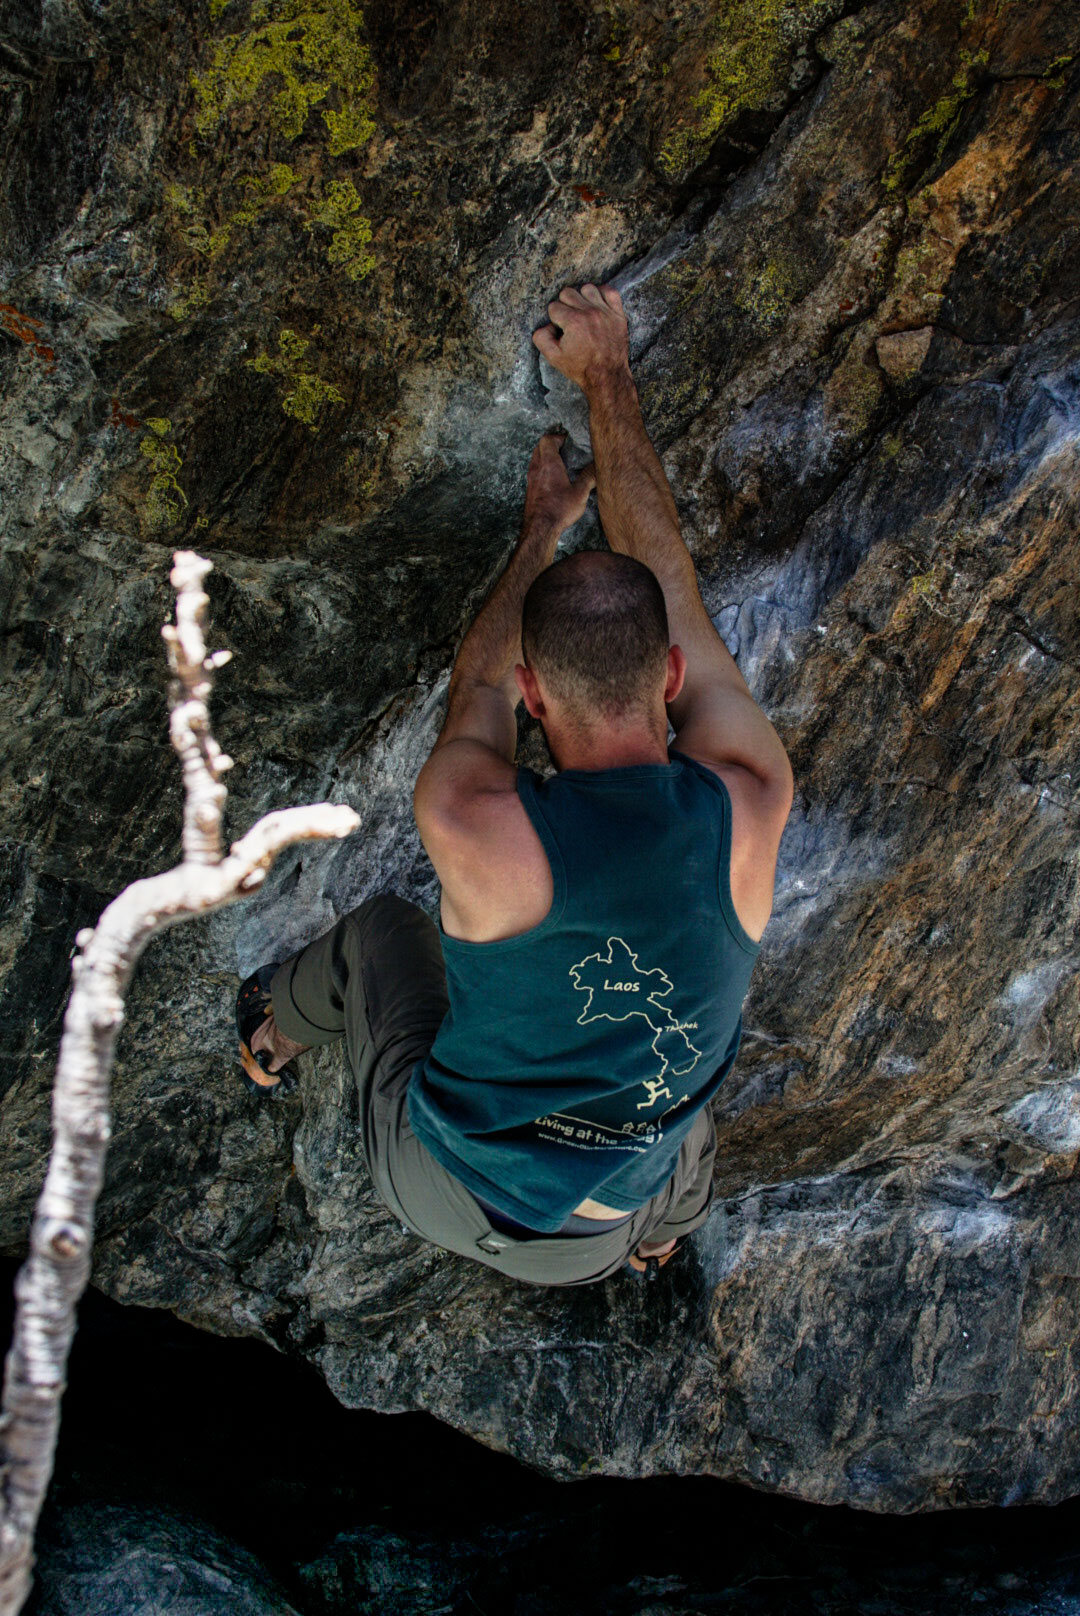 vickygood_travel_photography_colorado_rocky-mt.national-park_bouldering_small-18(8).jpg